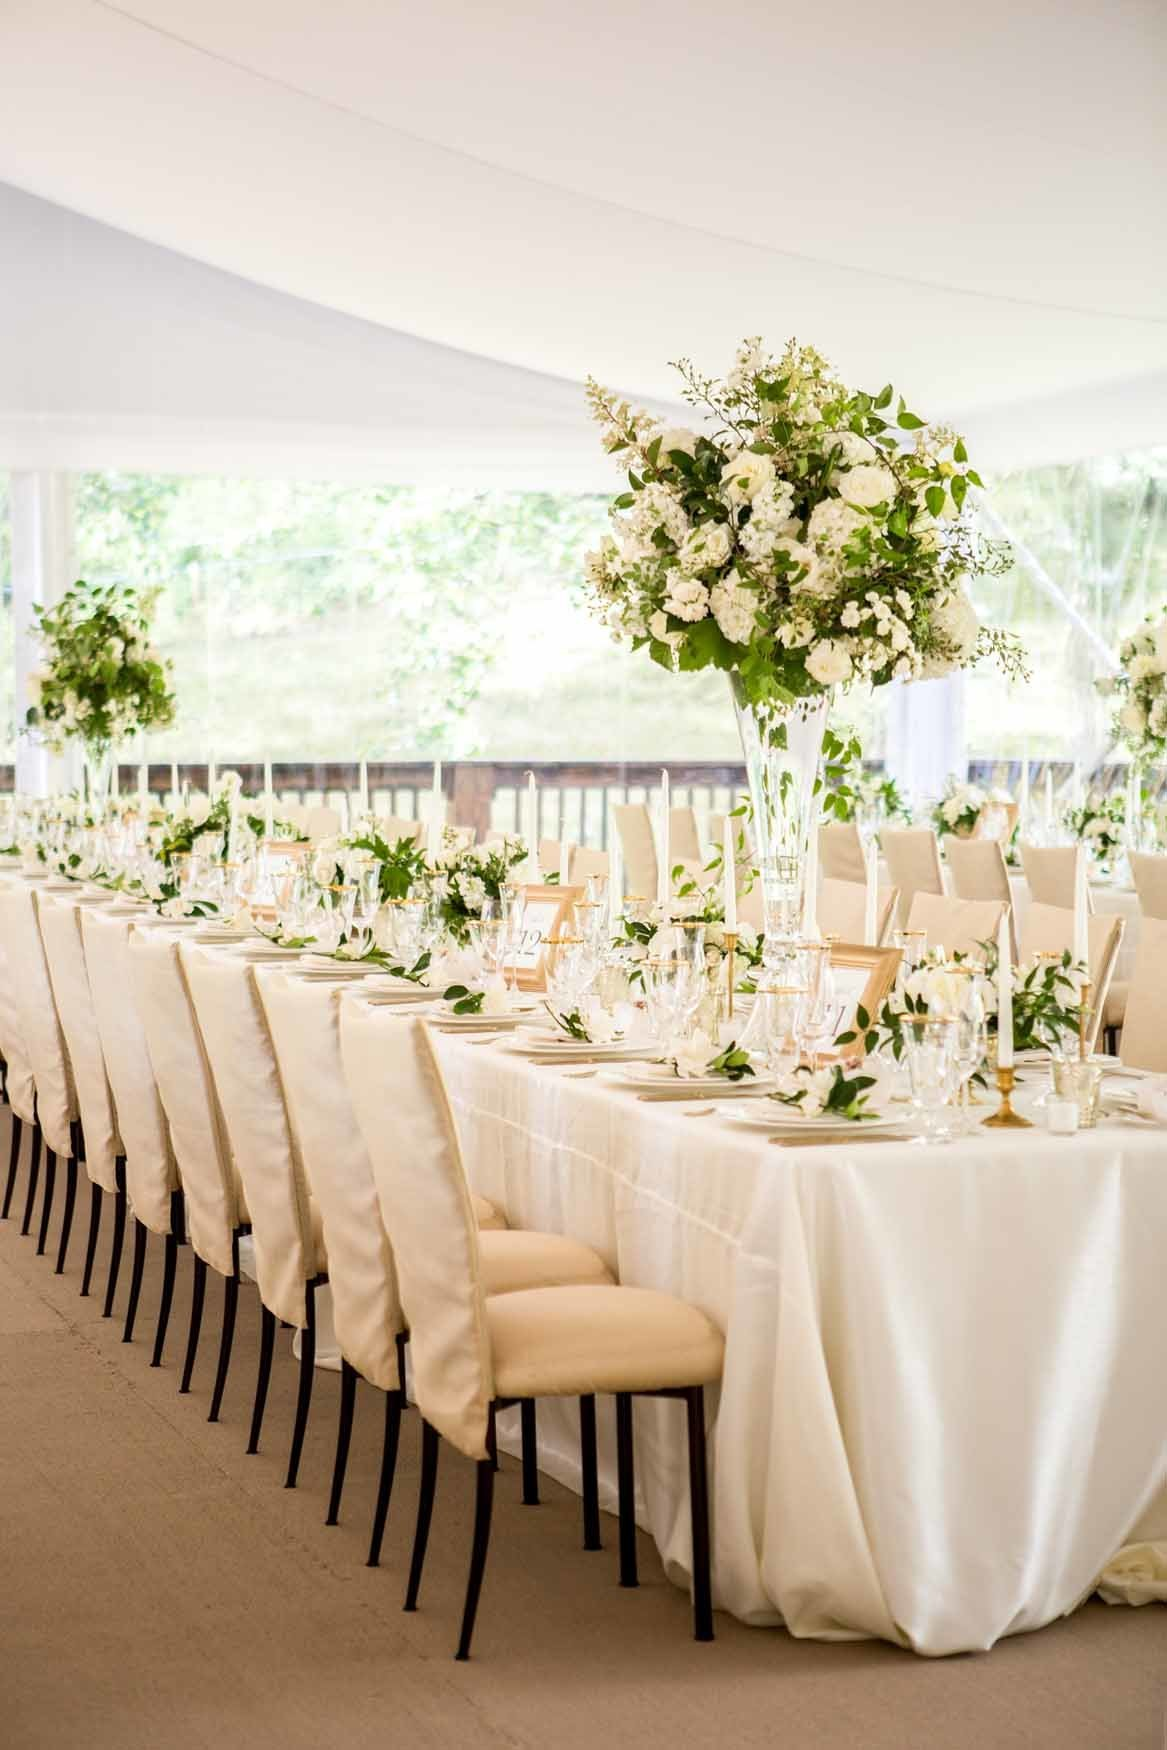 White summer tent wedding reception with white and green floral